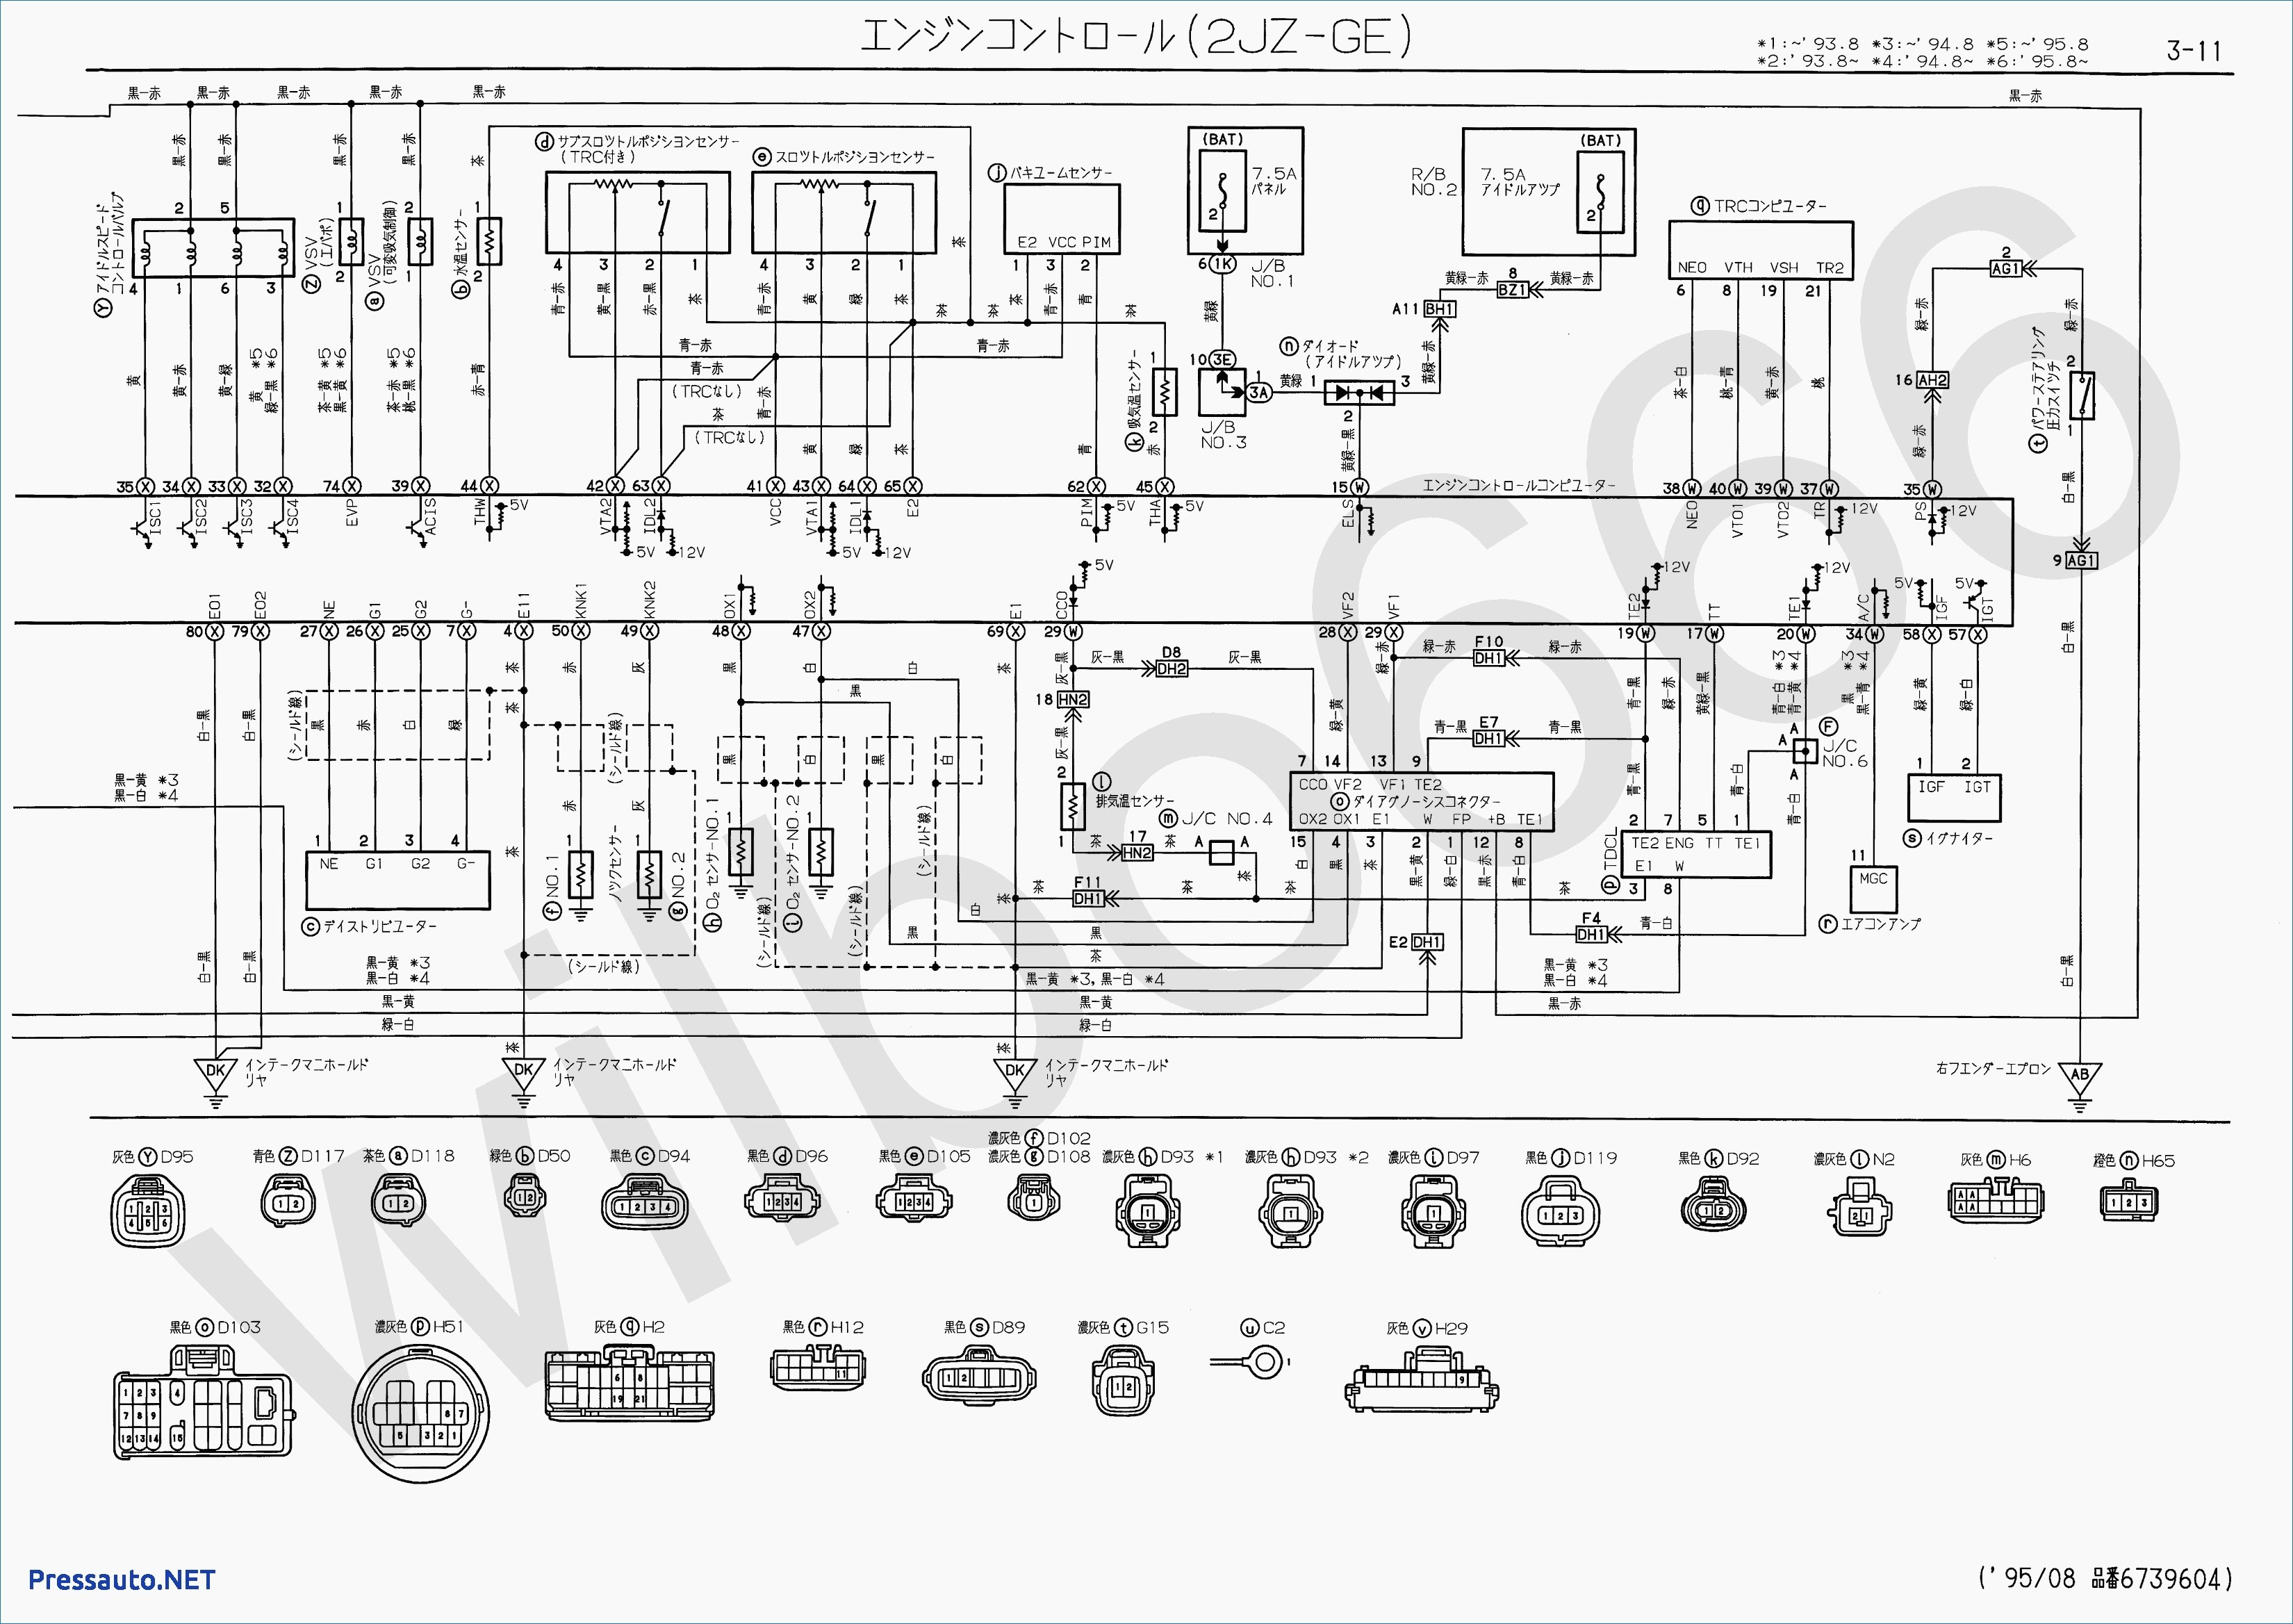 opel zafira wiring diagram download vauxhall zafira wiring diagram #9